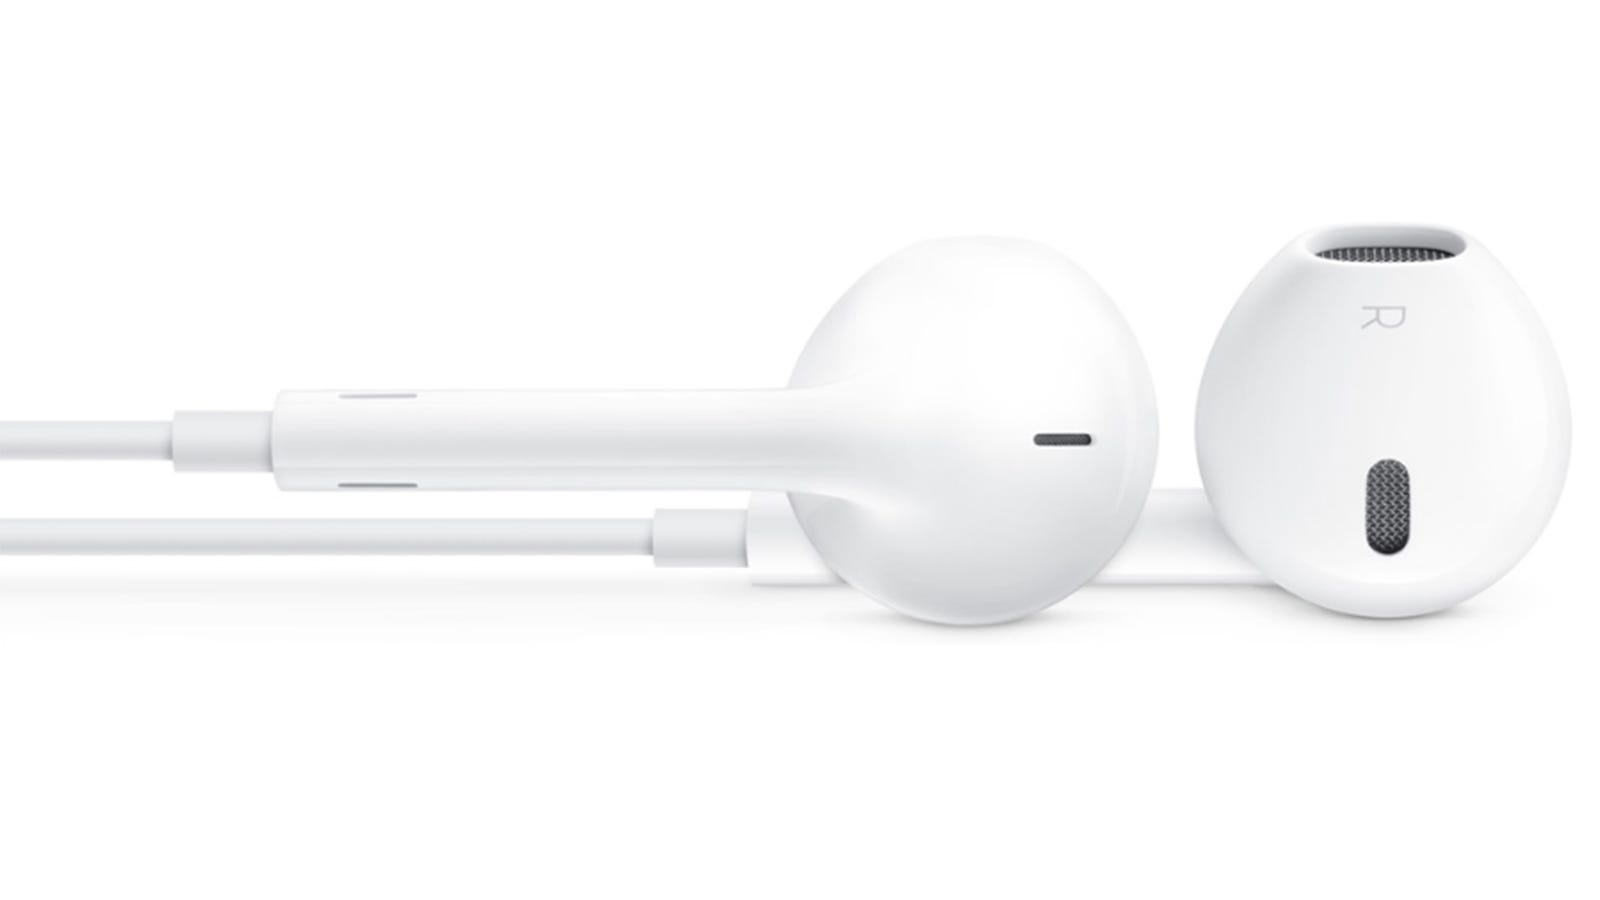 samsung earbuds rubber replacements - Apple's Rolling Out New Headphones That Might Not Be Crap